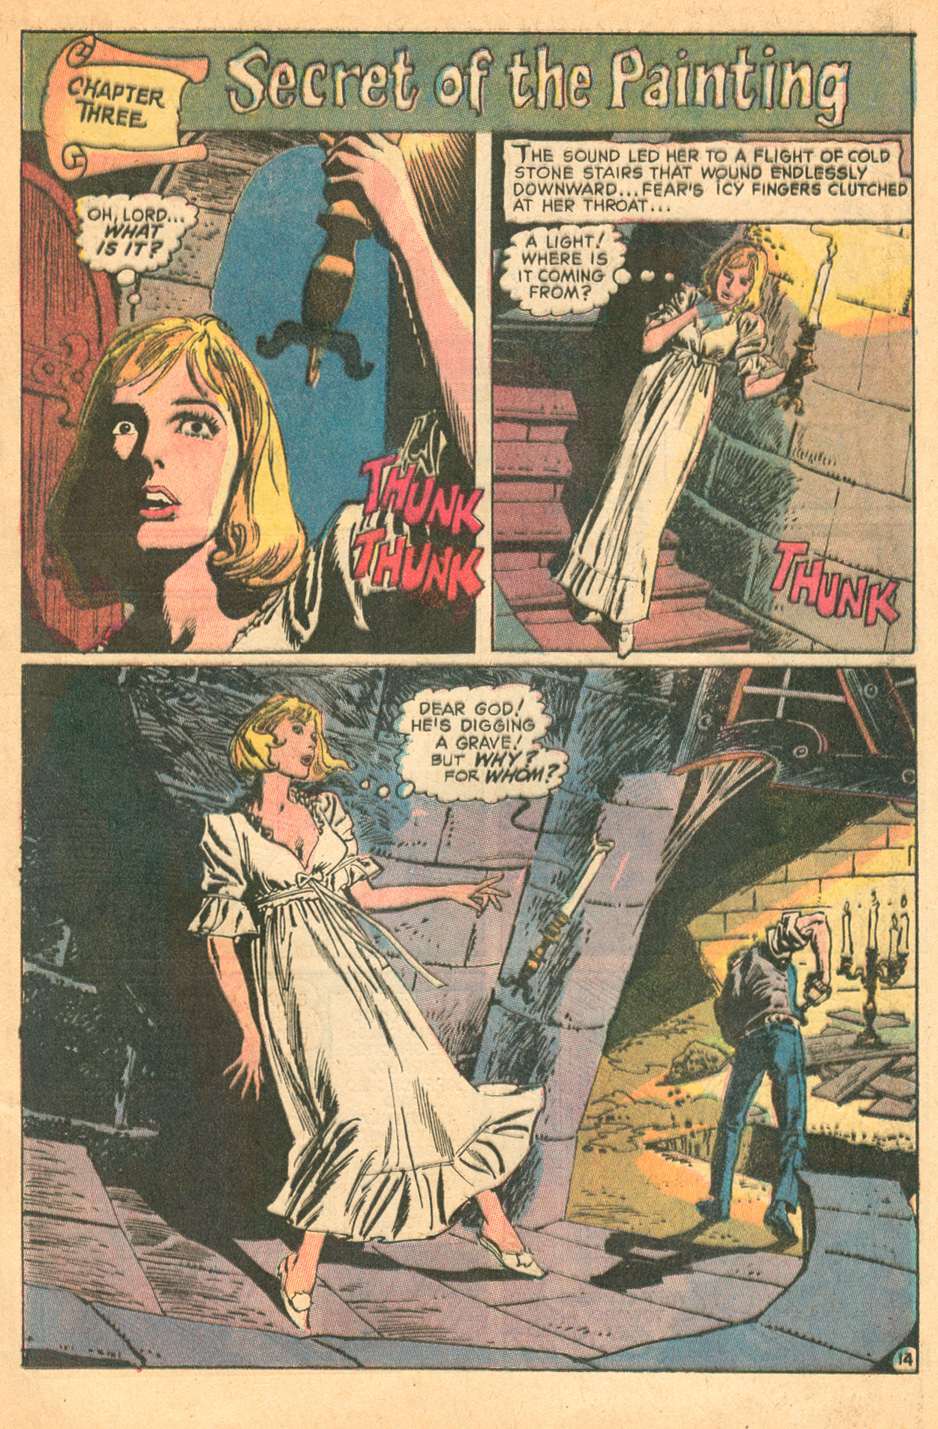 The Dark Mansion of Forbidden Love #2 DC comics Gothic Romance Comic Sequential Crush